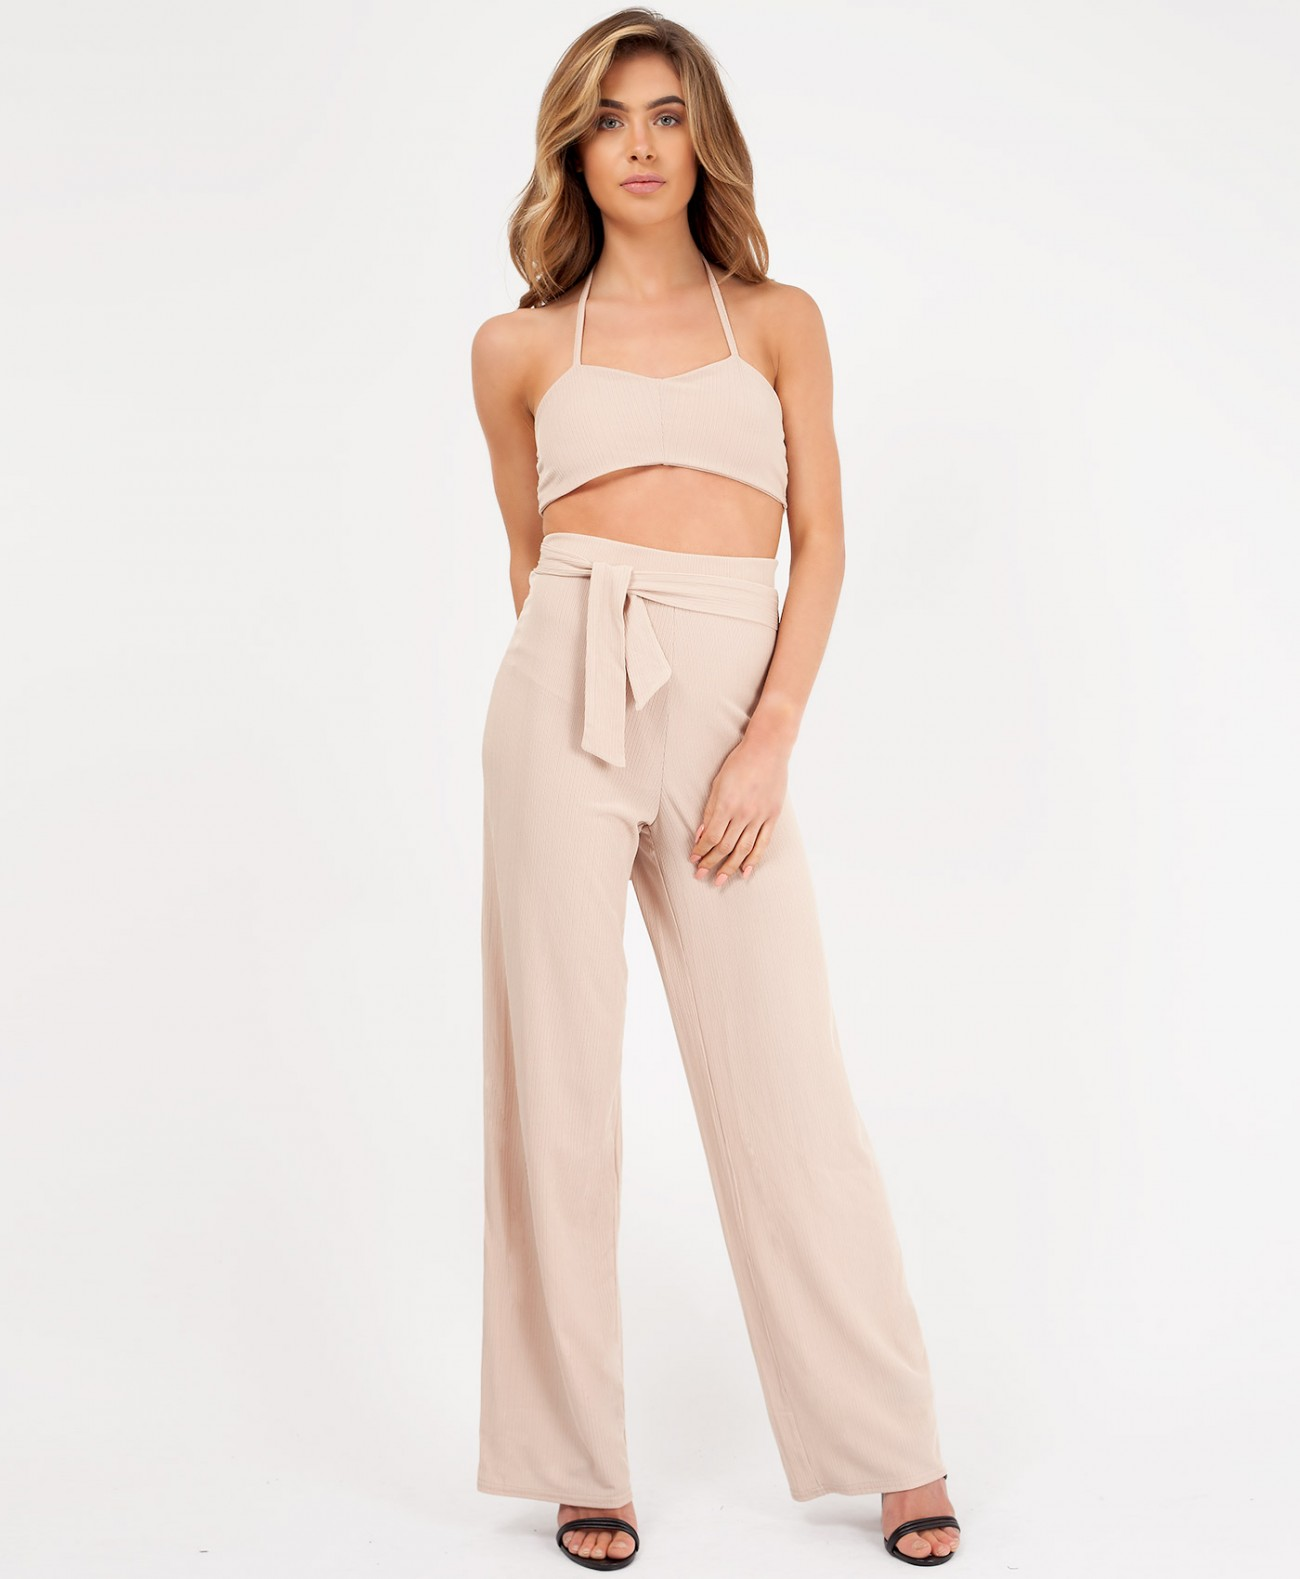 ad5cc1e149ee Beige Ribbed Crop Top & Flared Trouser Co Ord   LexiFashion